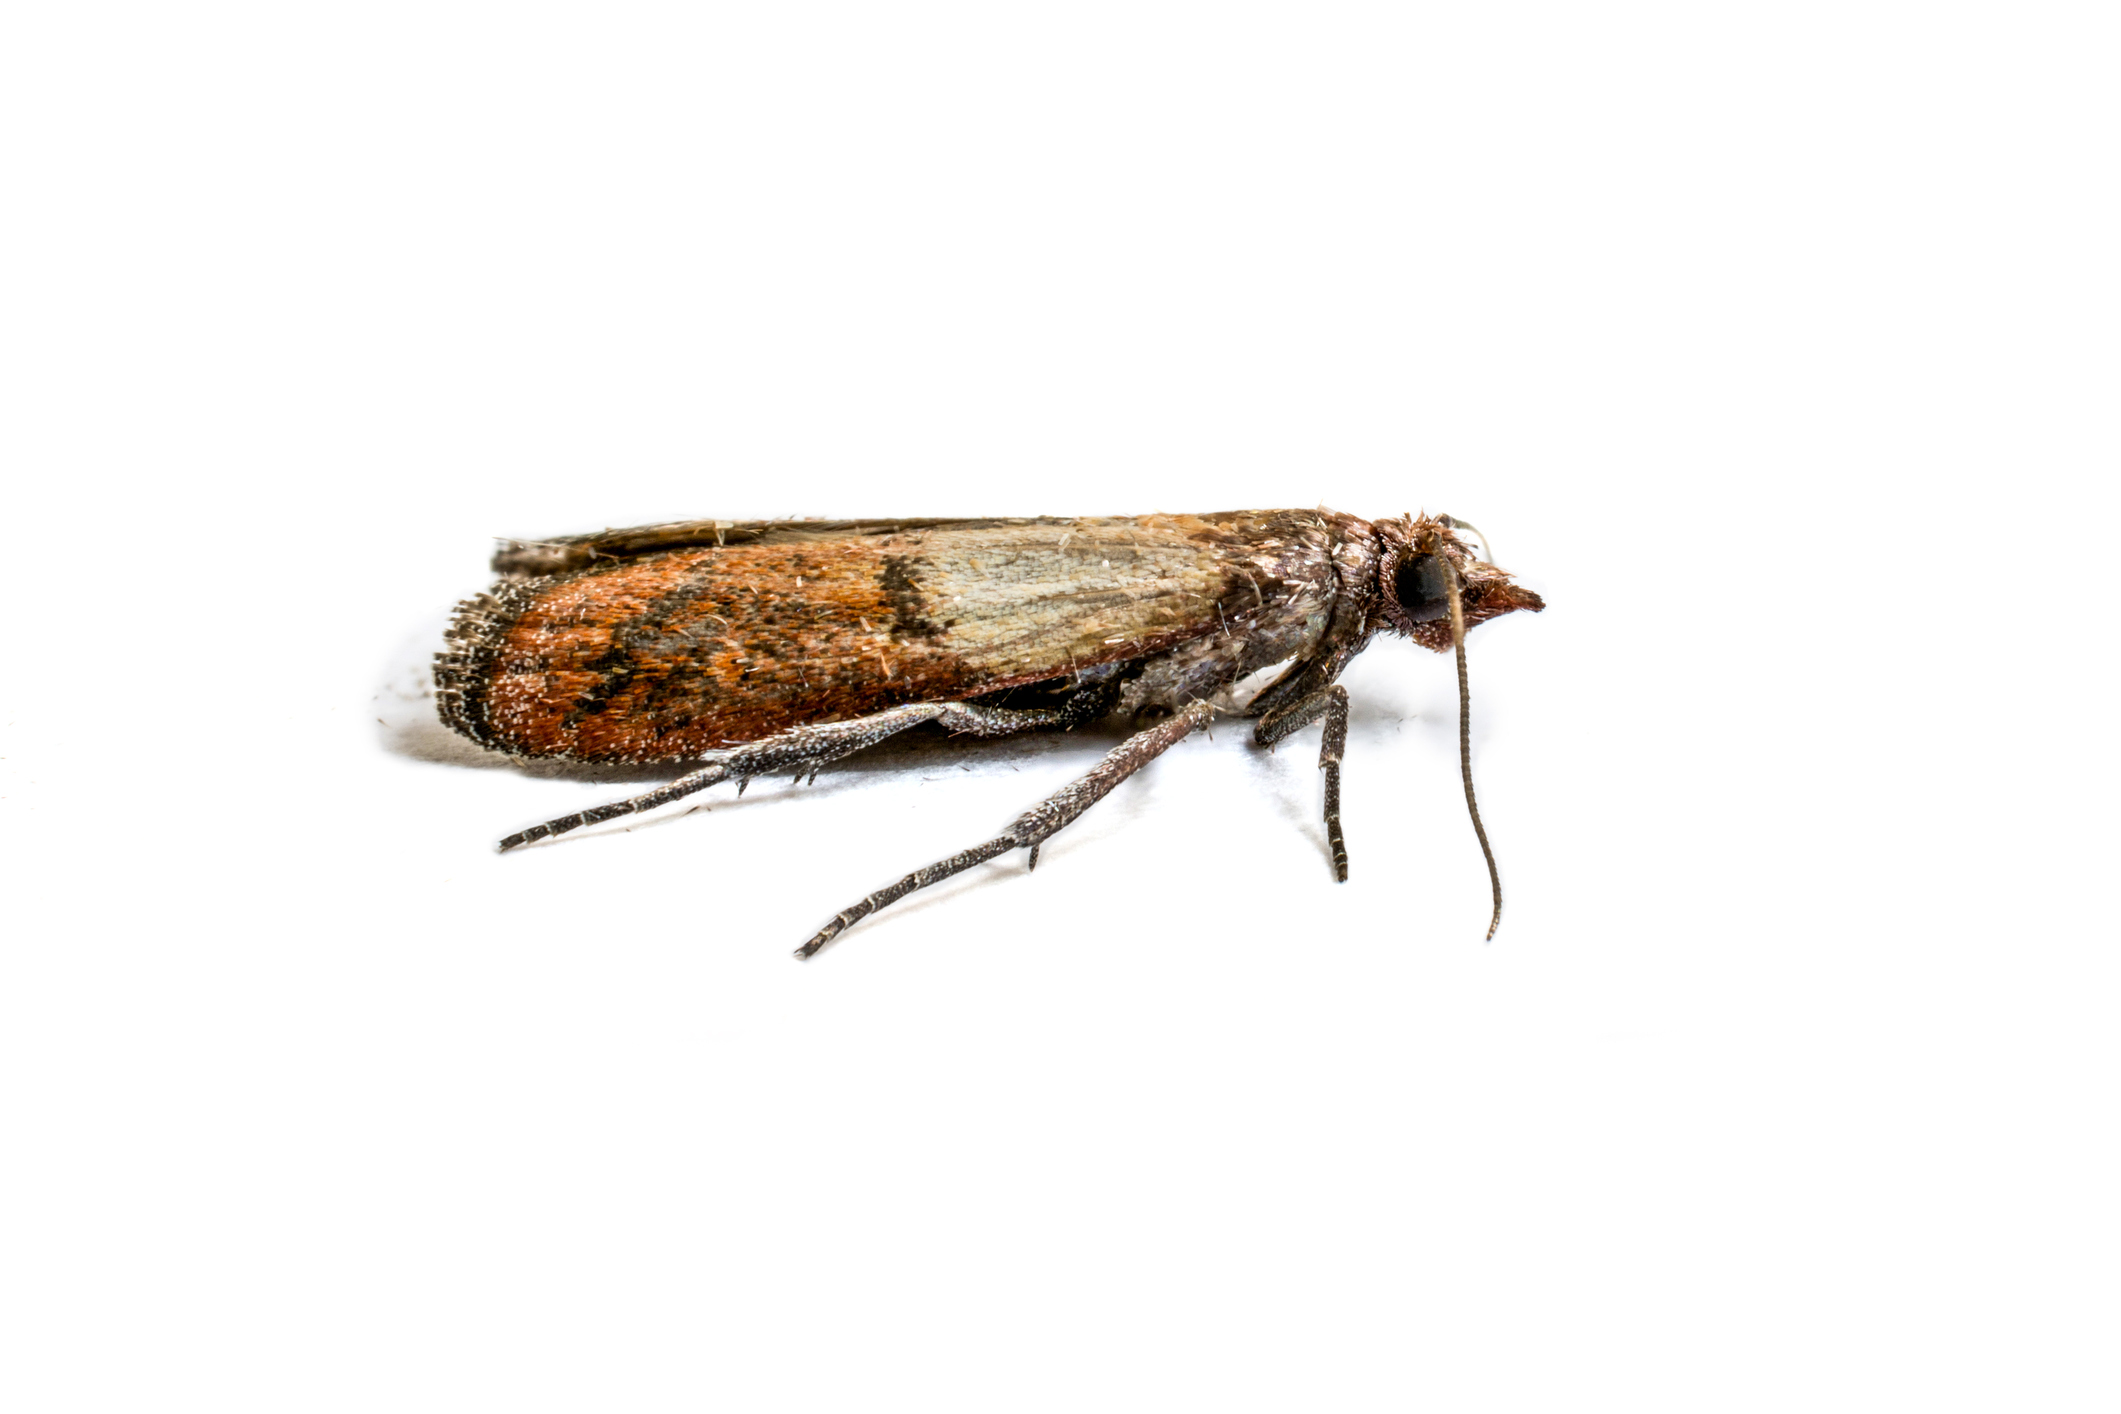 Indianmeal moths